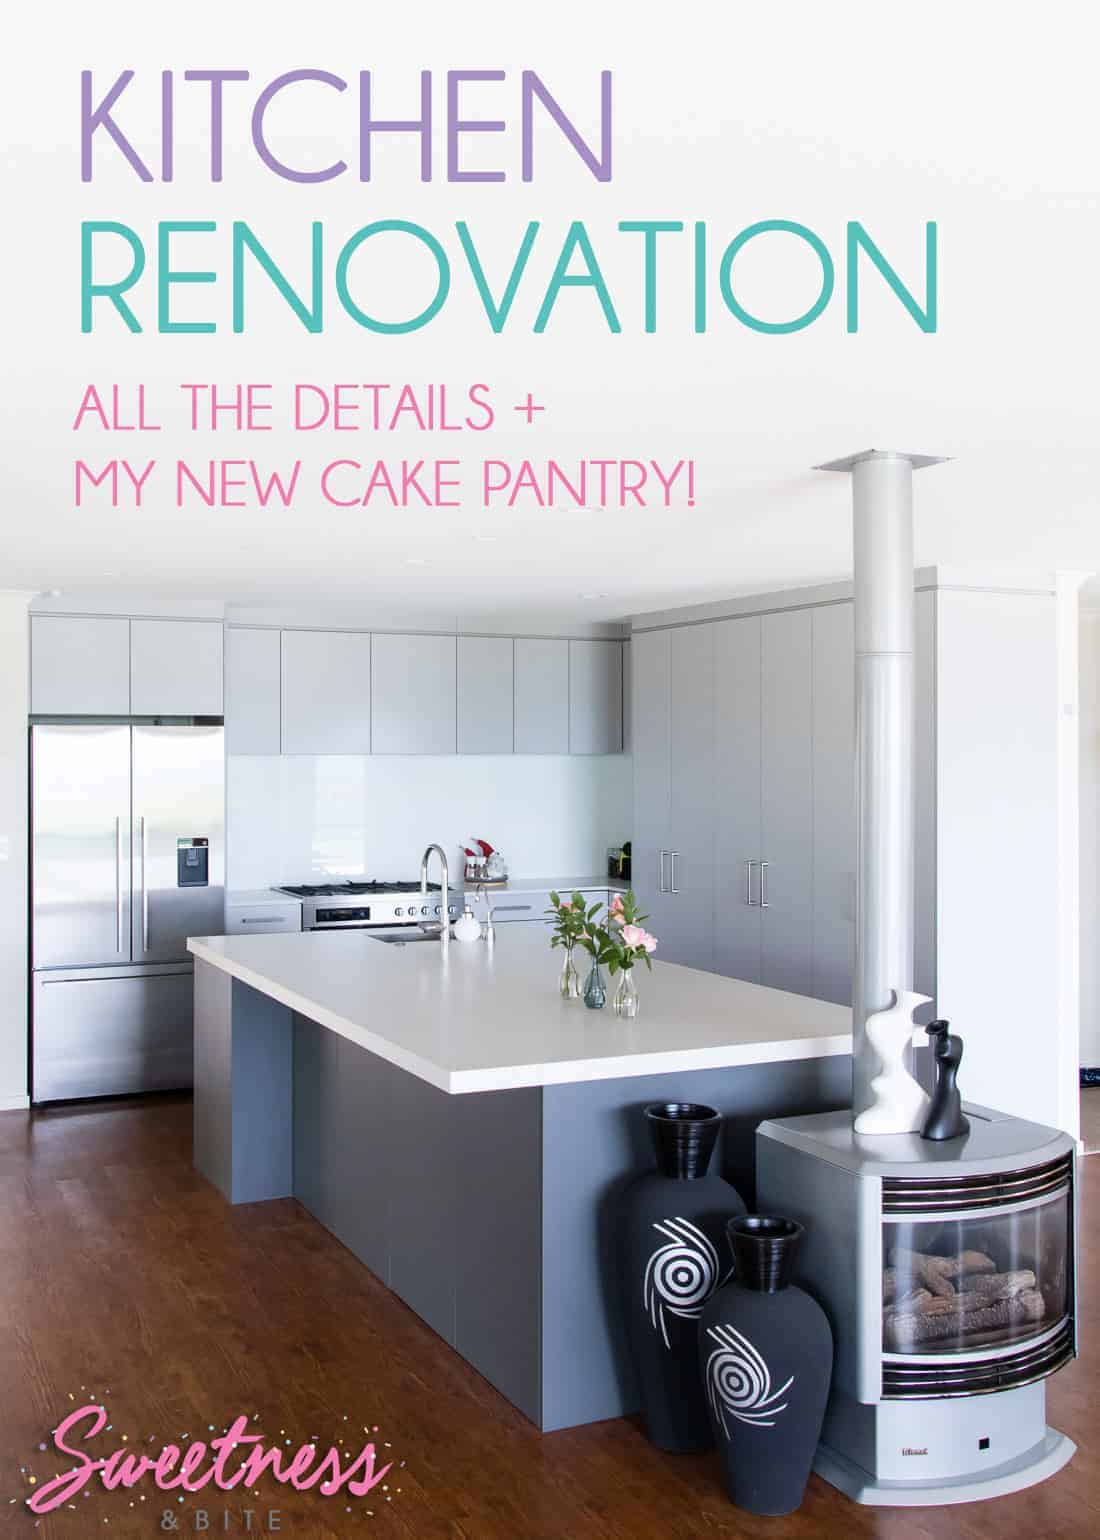 Sweetness and Bite Kitchen Renovation - All the details of our newly renovated kitchen, plus my new Cake Decorating Pantry!